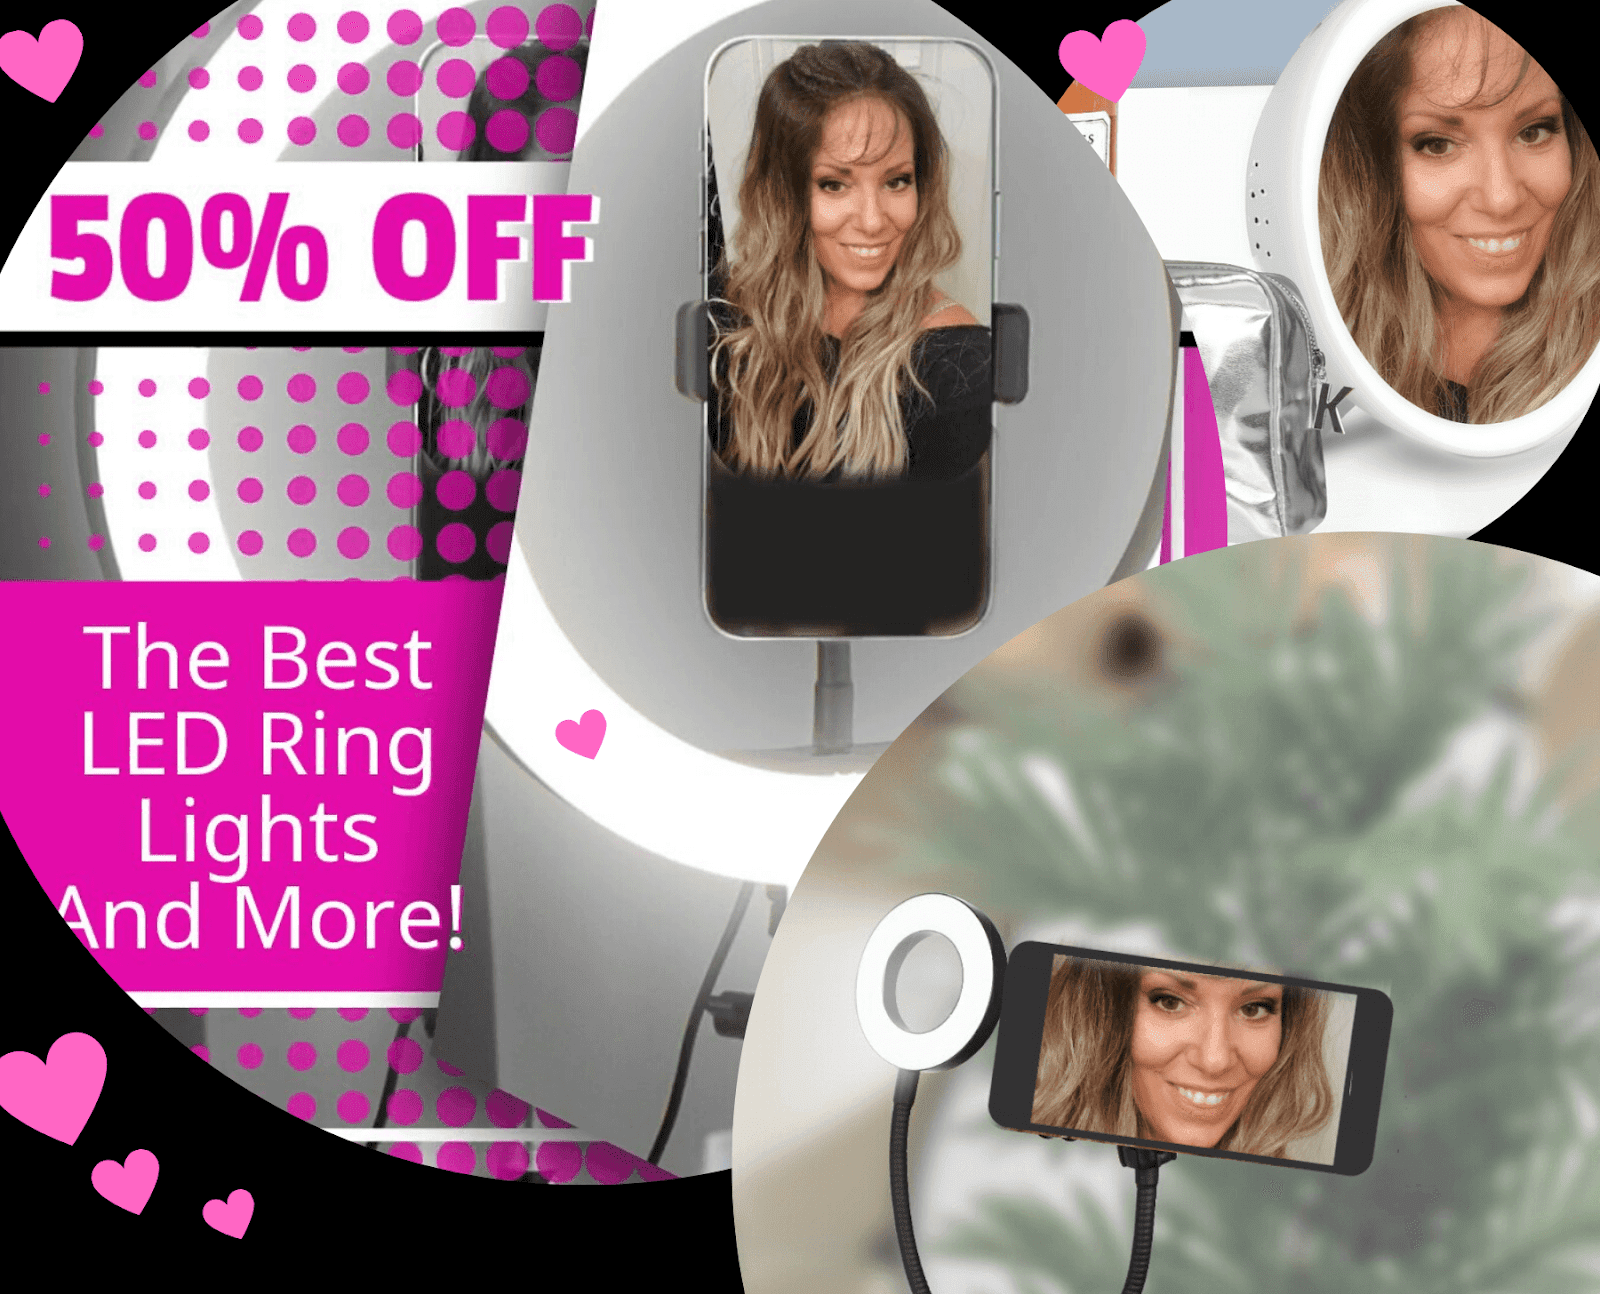 Best LED Ring Lights And More By Top Beauty Blogger Barbies Beauty Bits